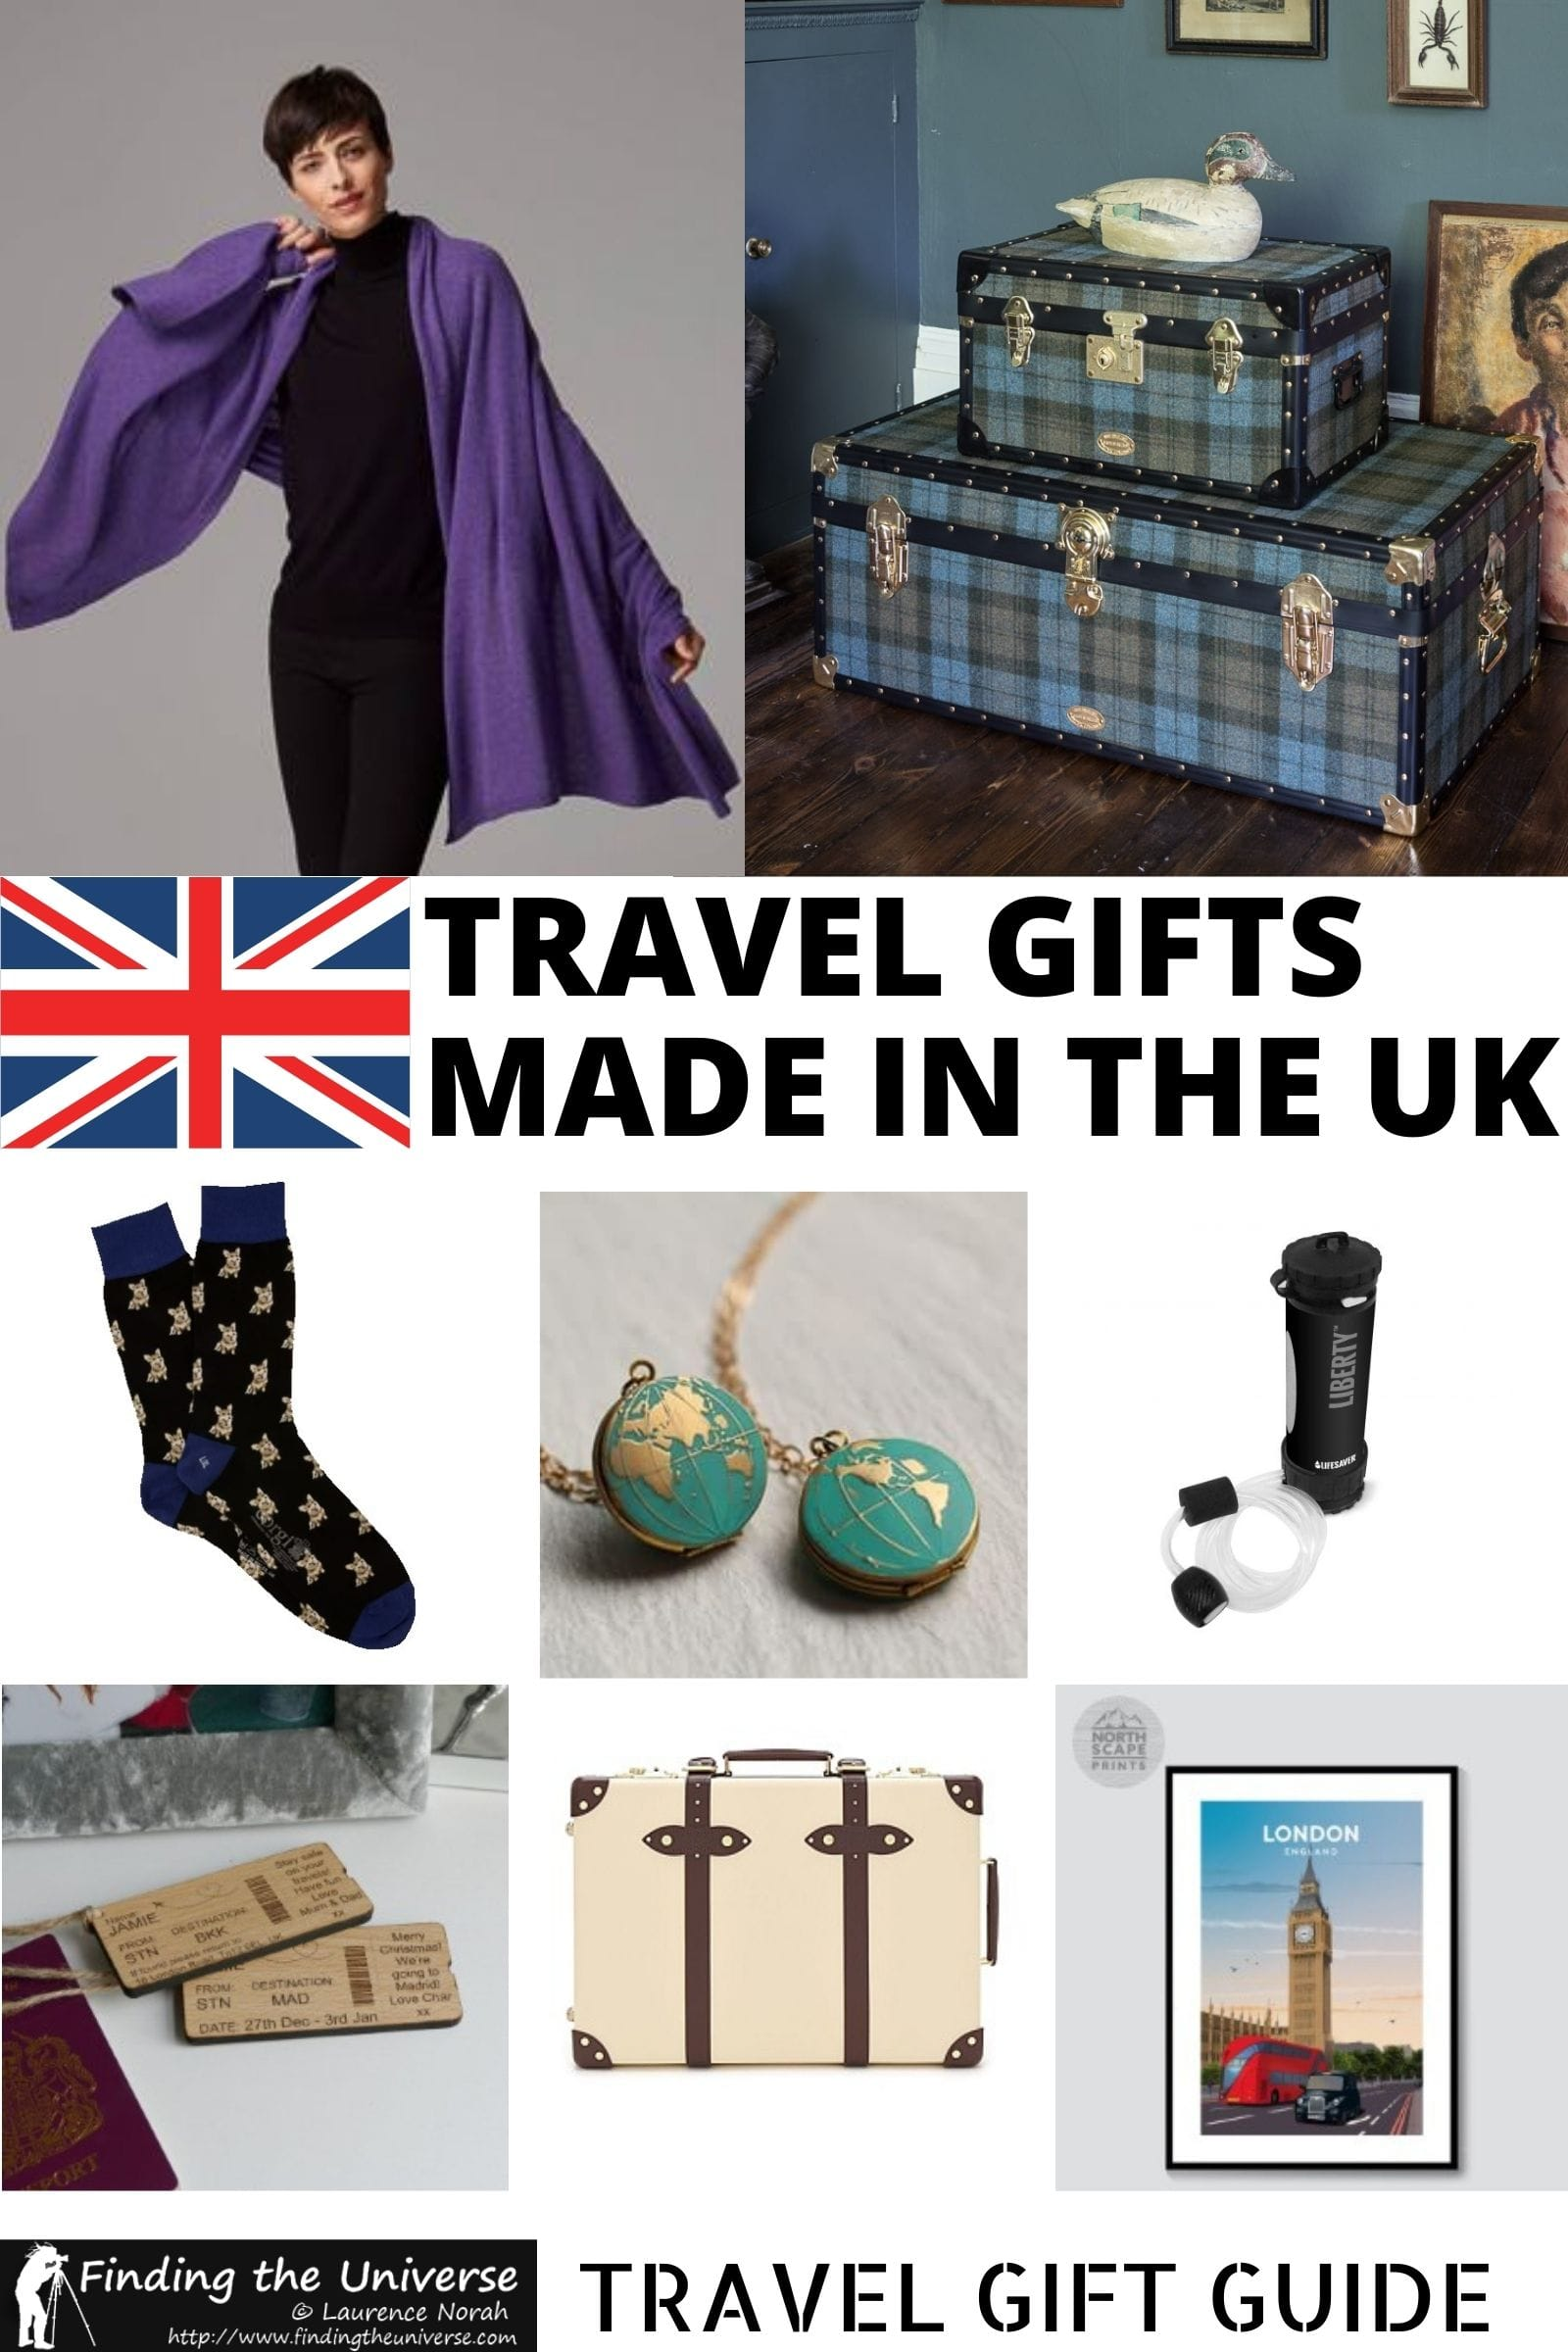 Looking for gifts made in Britain for a travel lover? This guide has some of the best gifts made in the UK at a range of budgets!